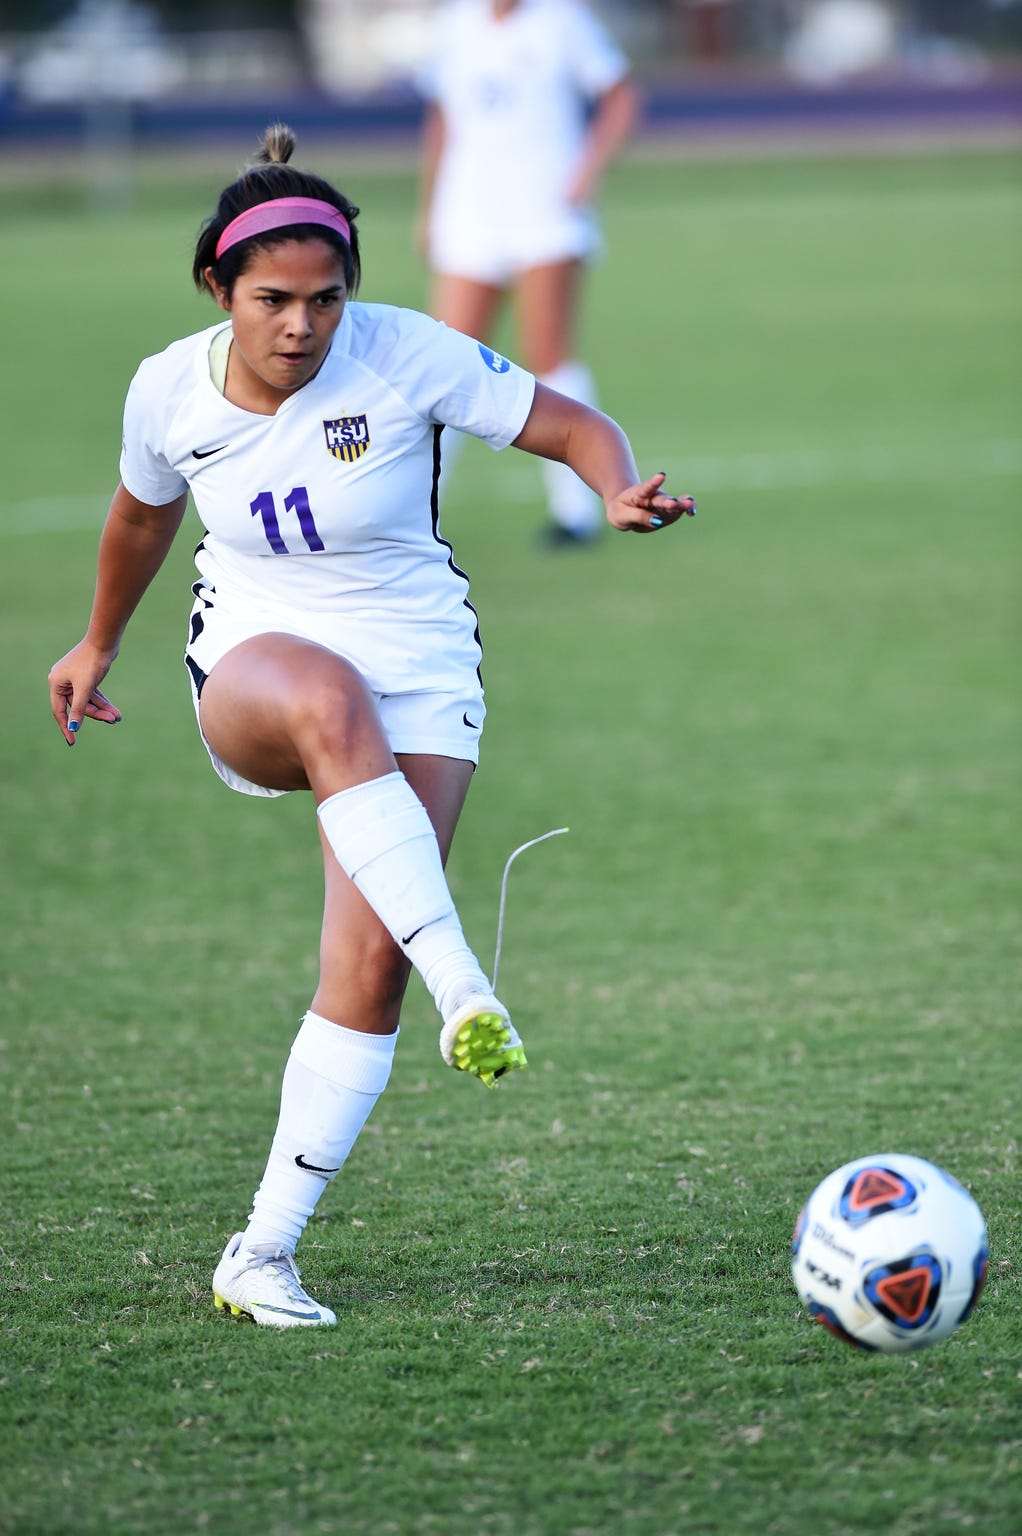 Hardin-Simmons defender Avery Lara (11) has gotten involved in the offense from the back during her freshman year. The Abilene High grad has taken corner kicks for the Cowgirls and has two assists this season.